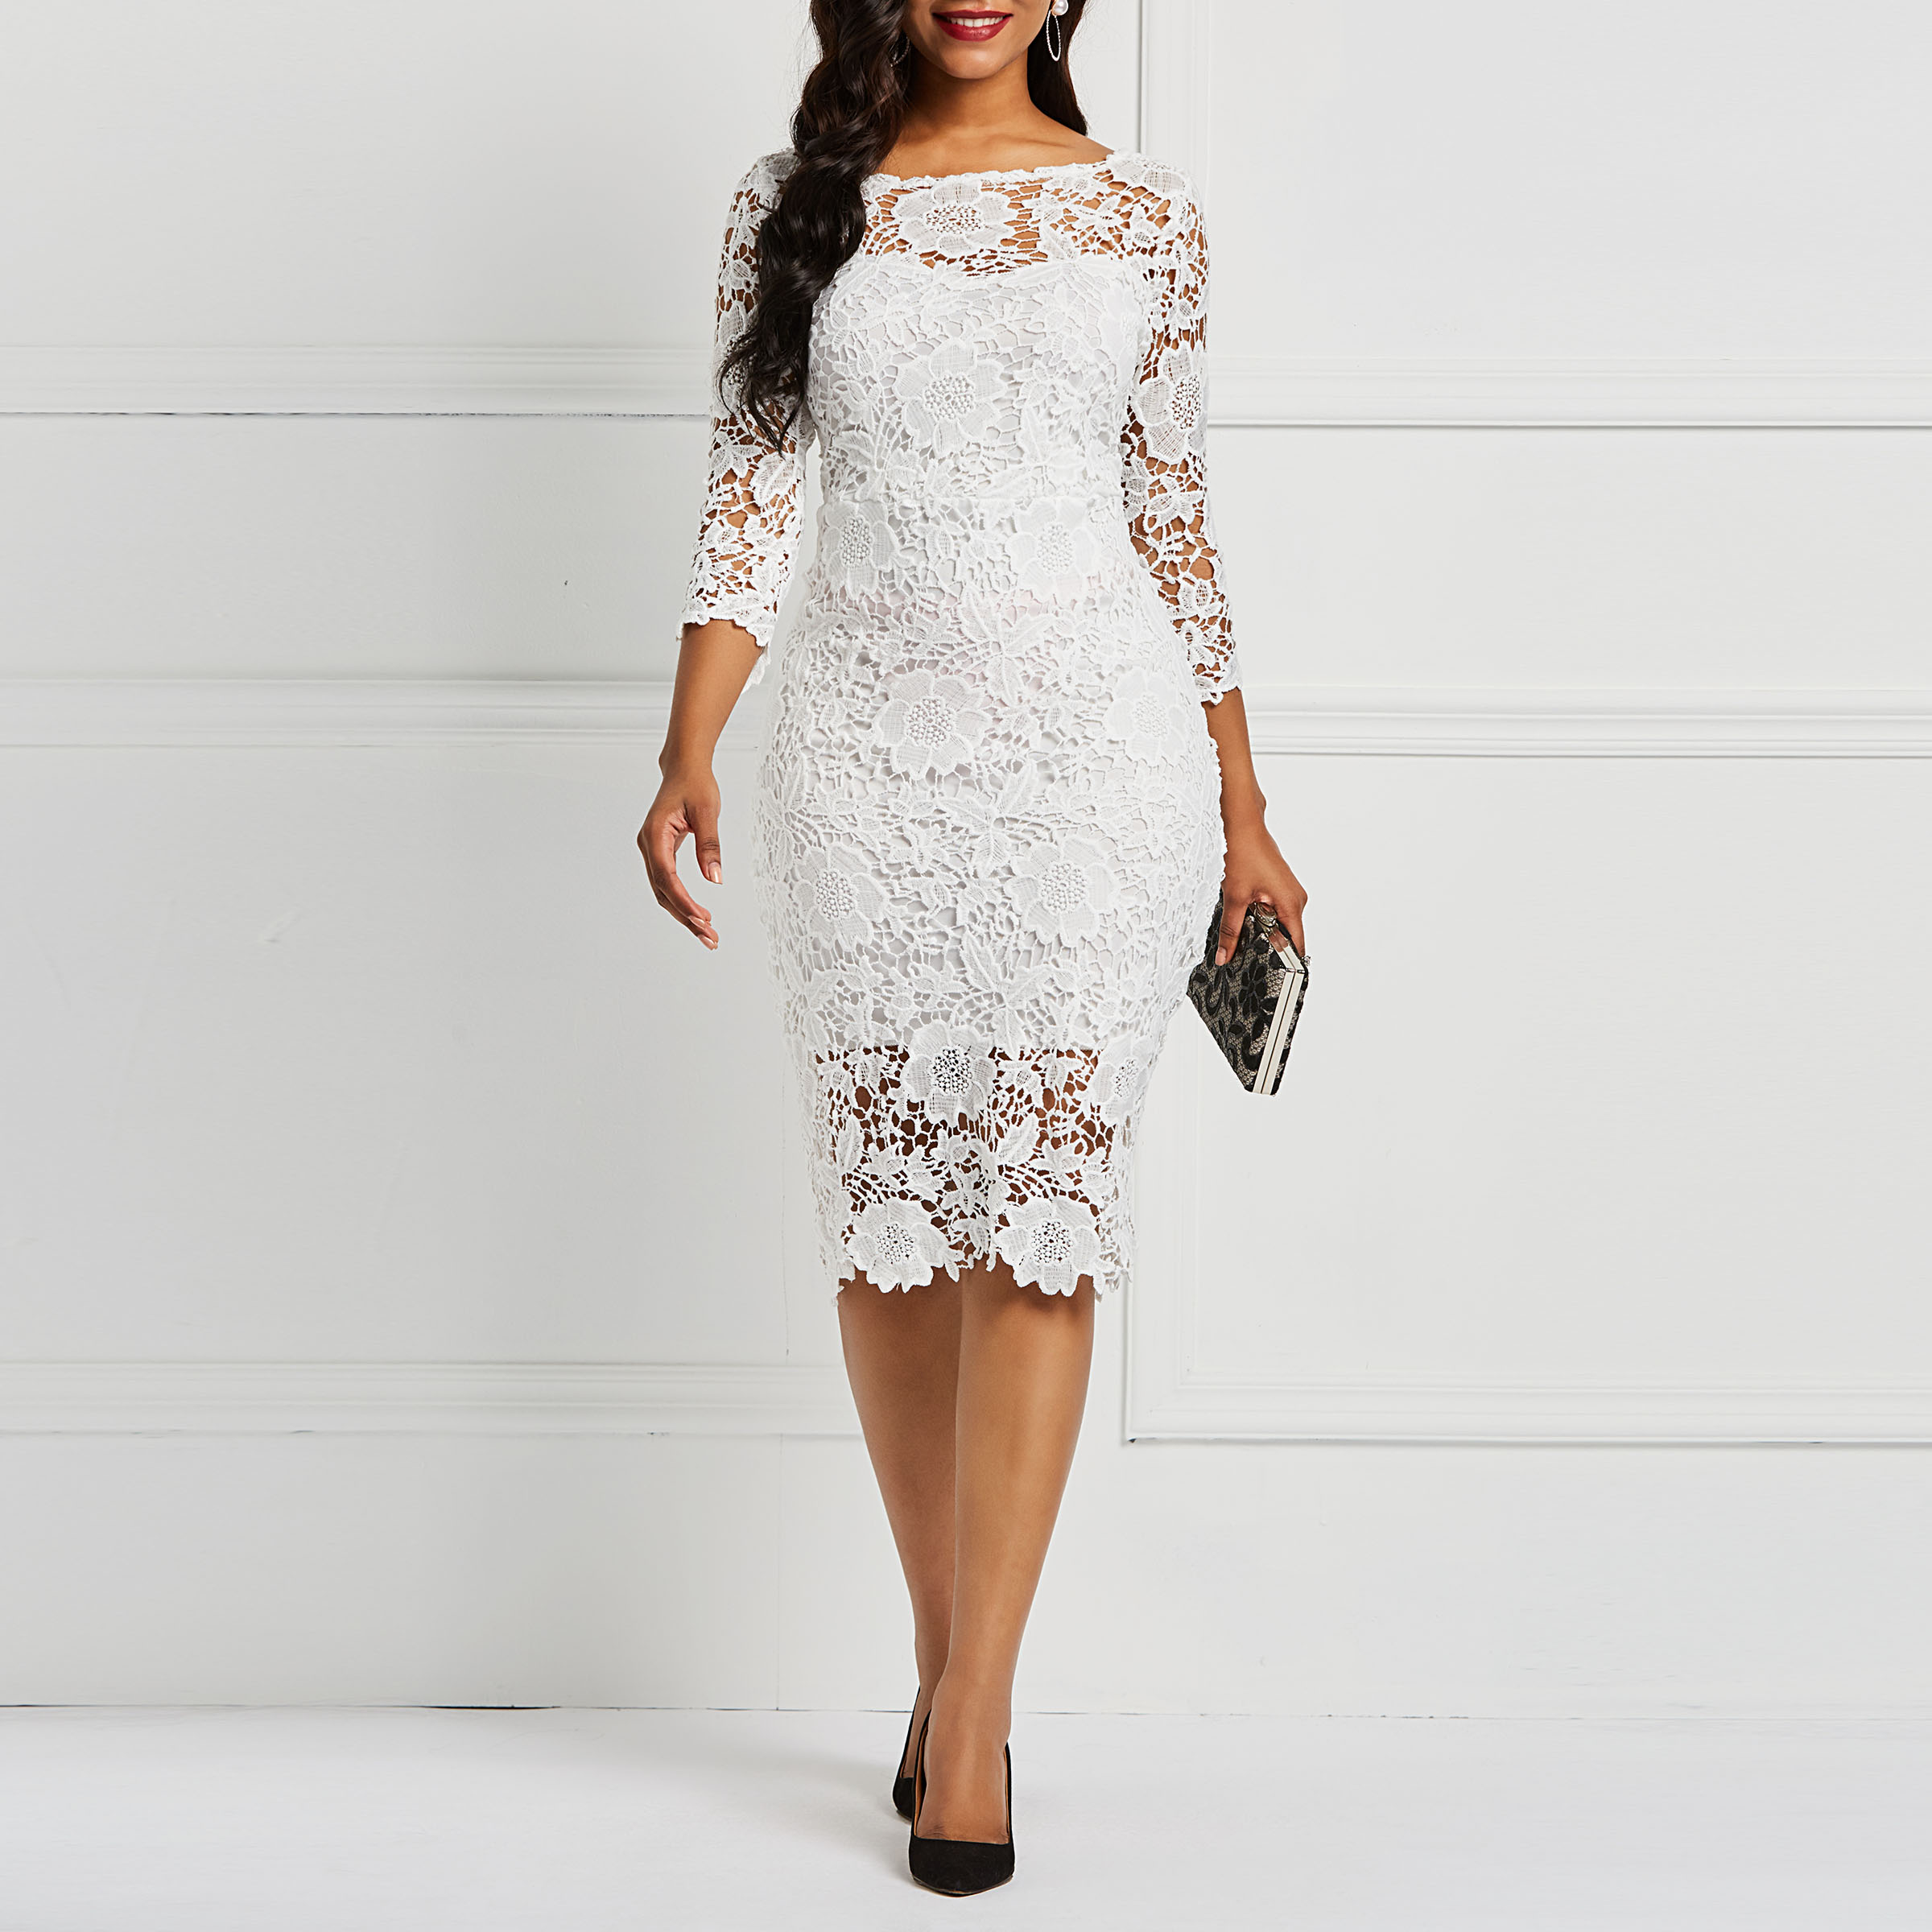 Women Midi Dresses Elegant Evening White Blue Sexy Lace Dress Party Fall Fashion Floral Office Vestido Ladies Cocktail Dresses